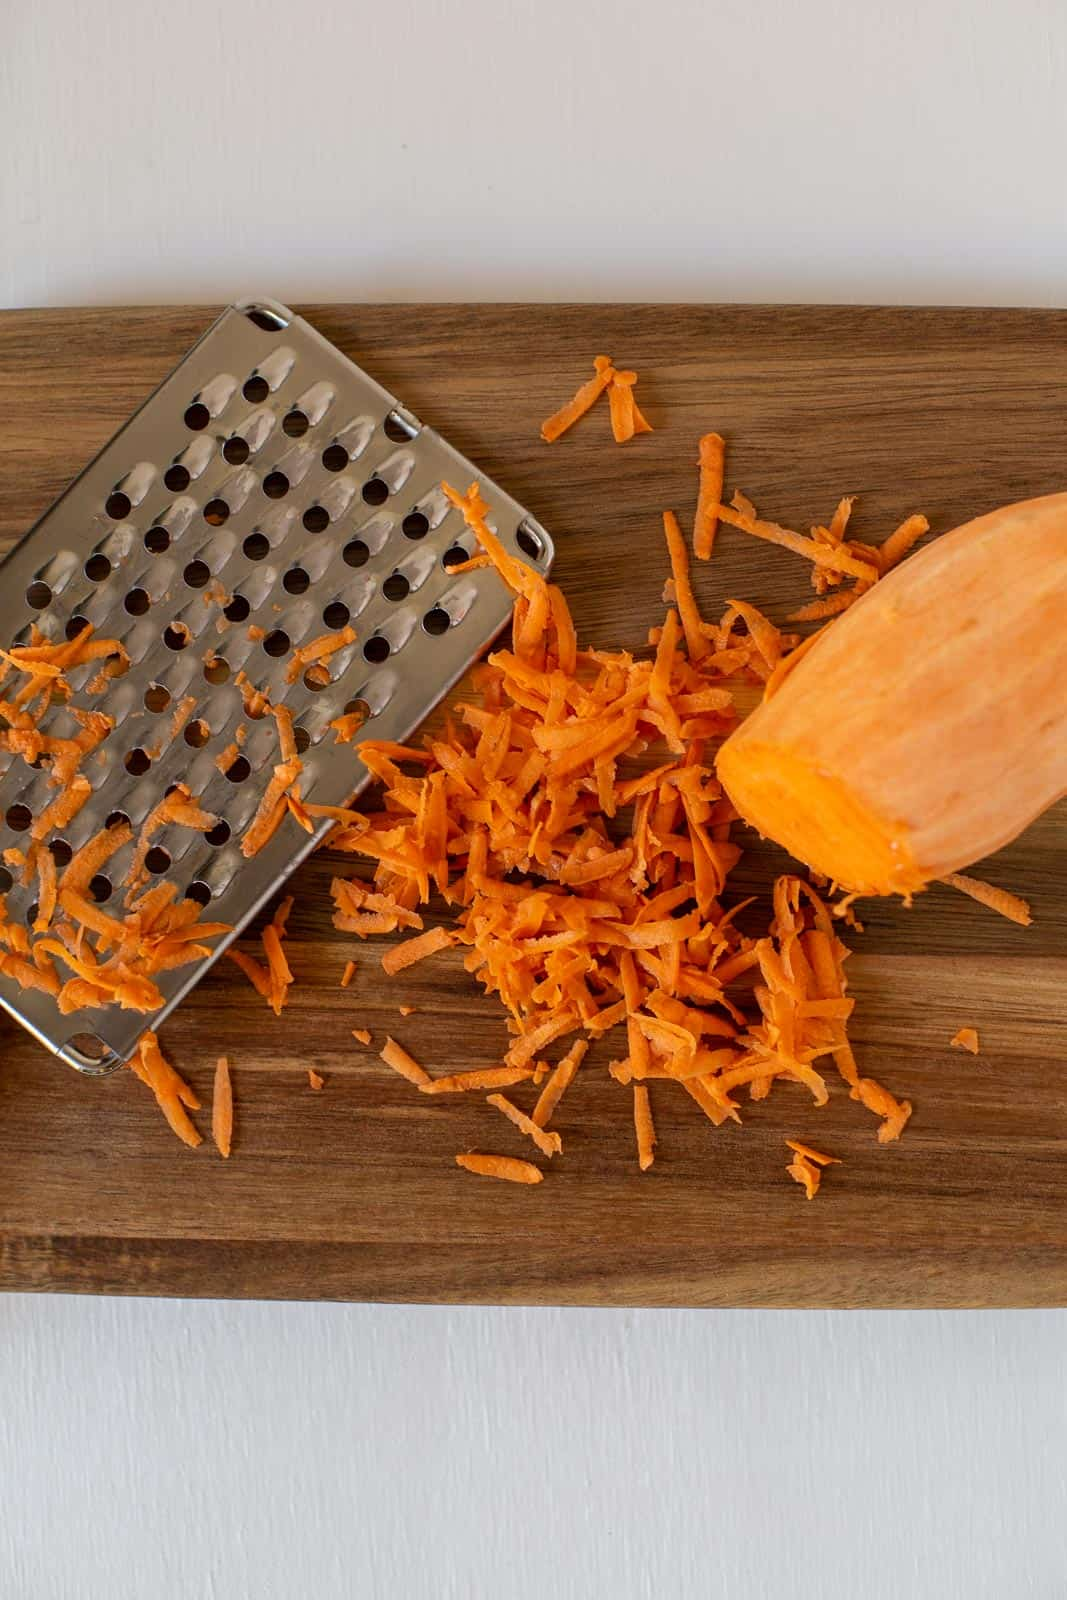 sweet potato shredded with box grater